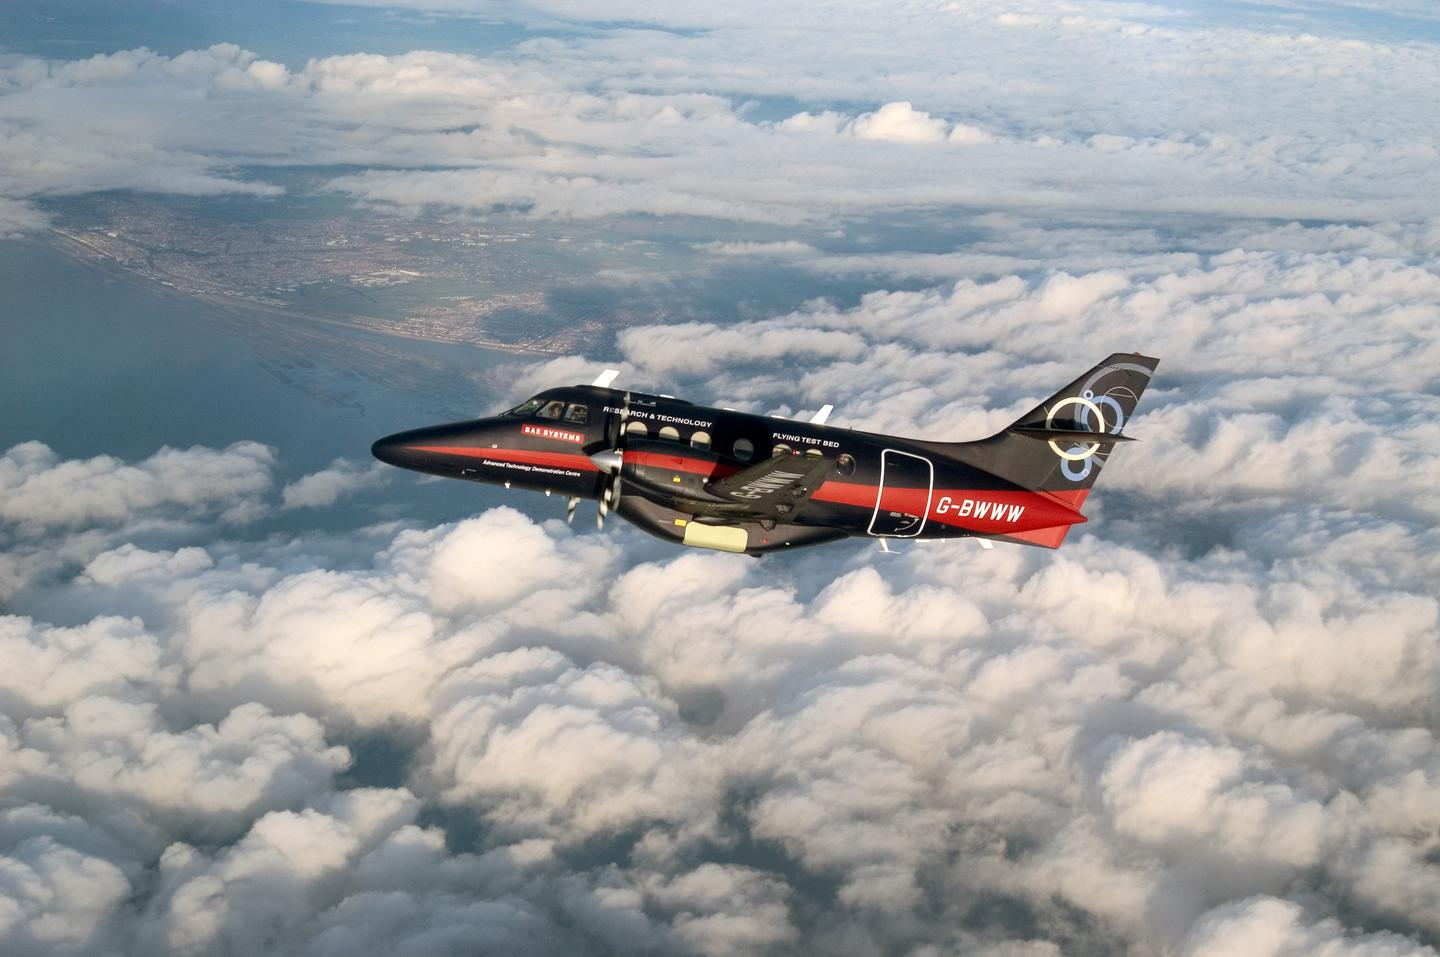 The modified Jetstream flew 500 miles (800 km) under ground supervision